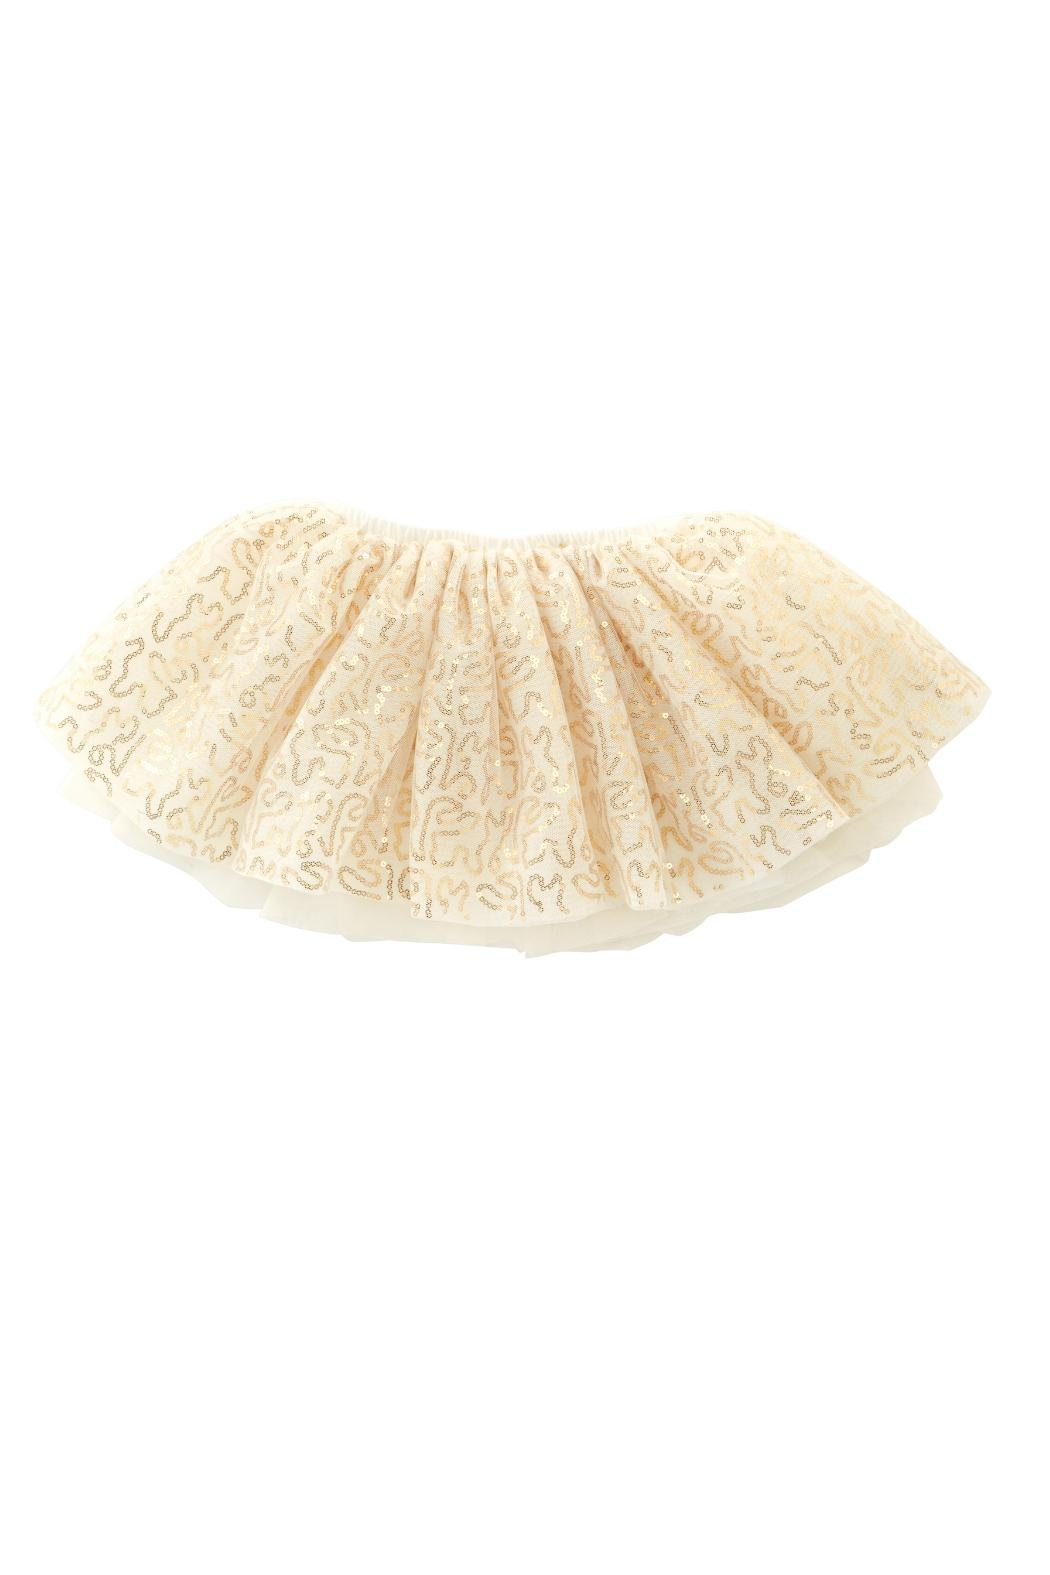 Mud Pie Gold Mesh Skirt - Front Cropped Image